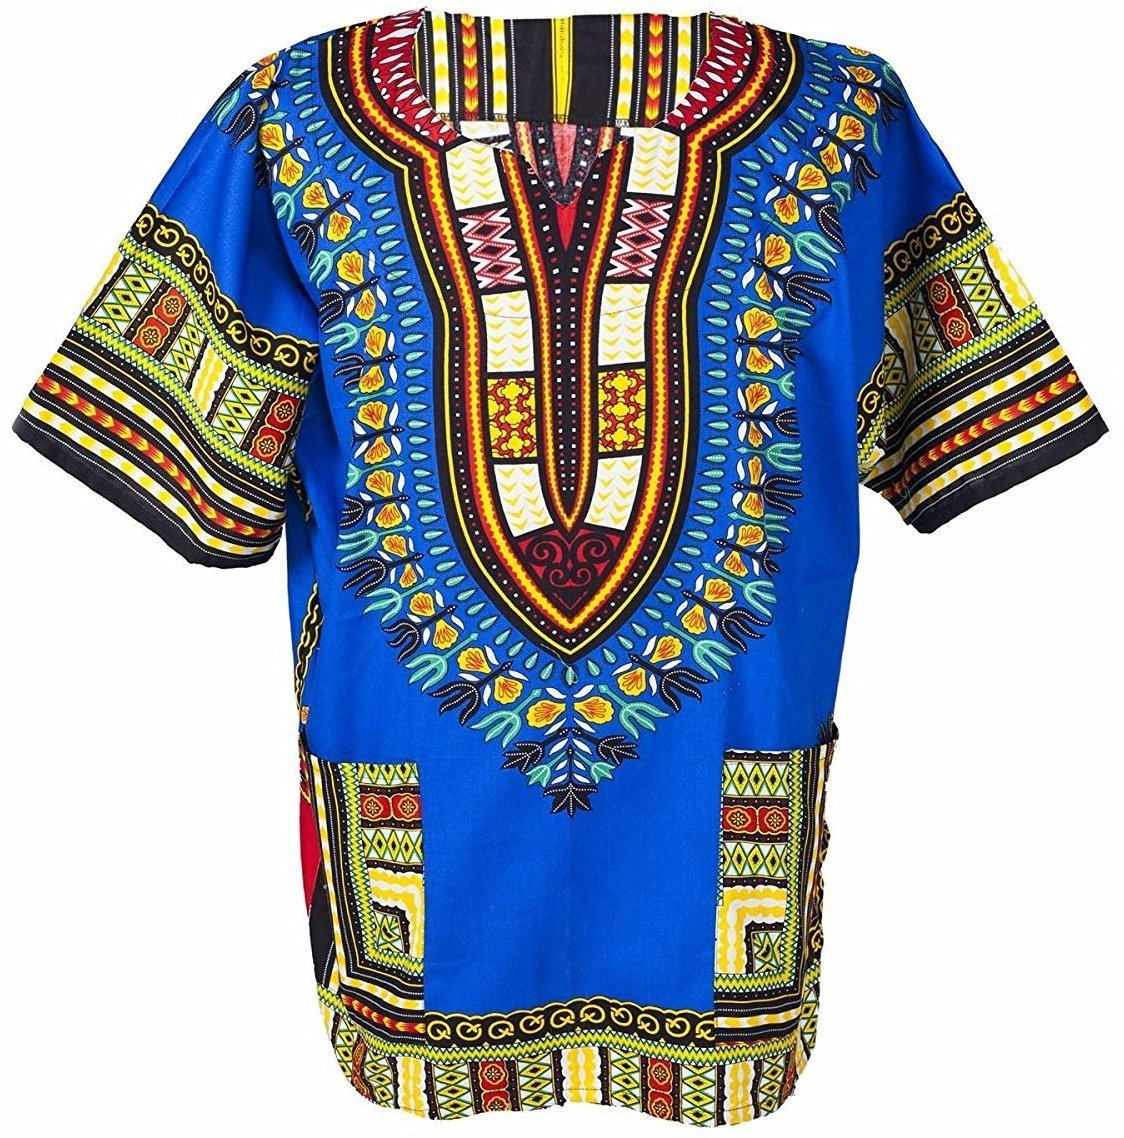 Traditional African Dashiki Cotton Shirt – Tribal Hippie Style- Variety Colors Perfect for Festival- Craft Clothes -Mens, Womens, Unisex (X-Large, Blue) by vvProud (Image #1)